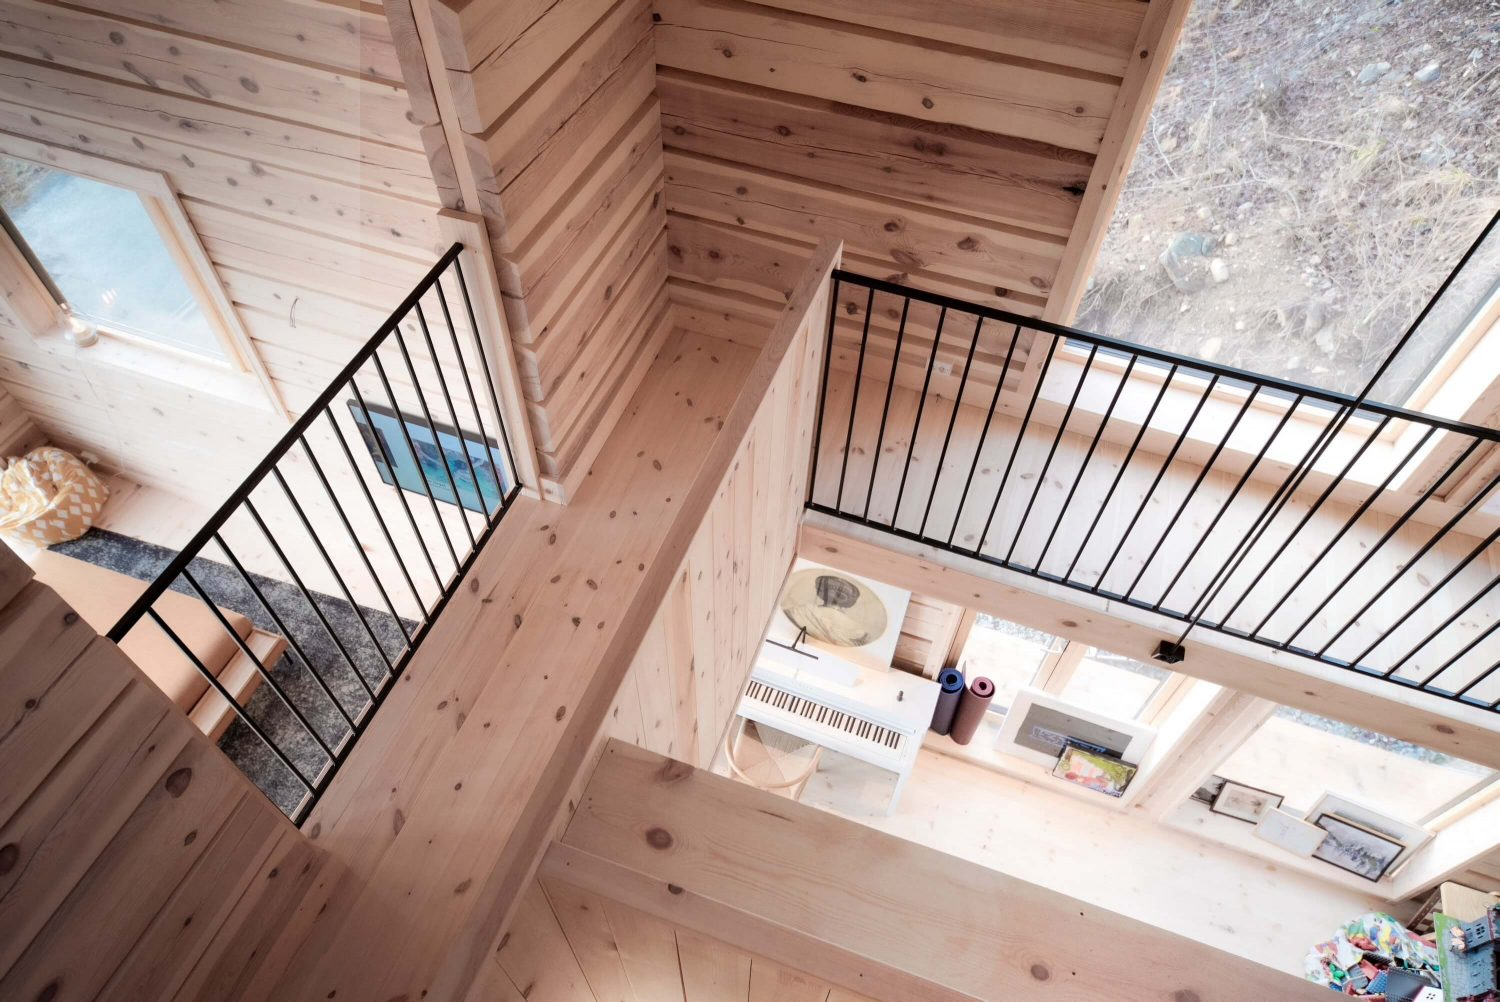 Zieglers Nest by Rever & Drage Architects